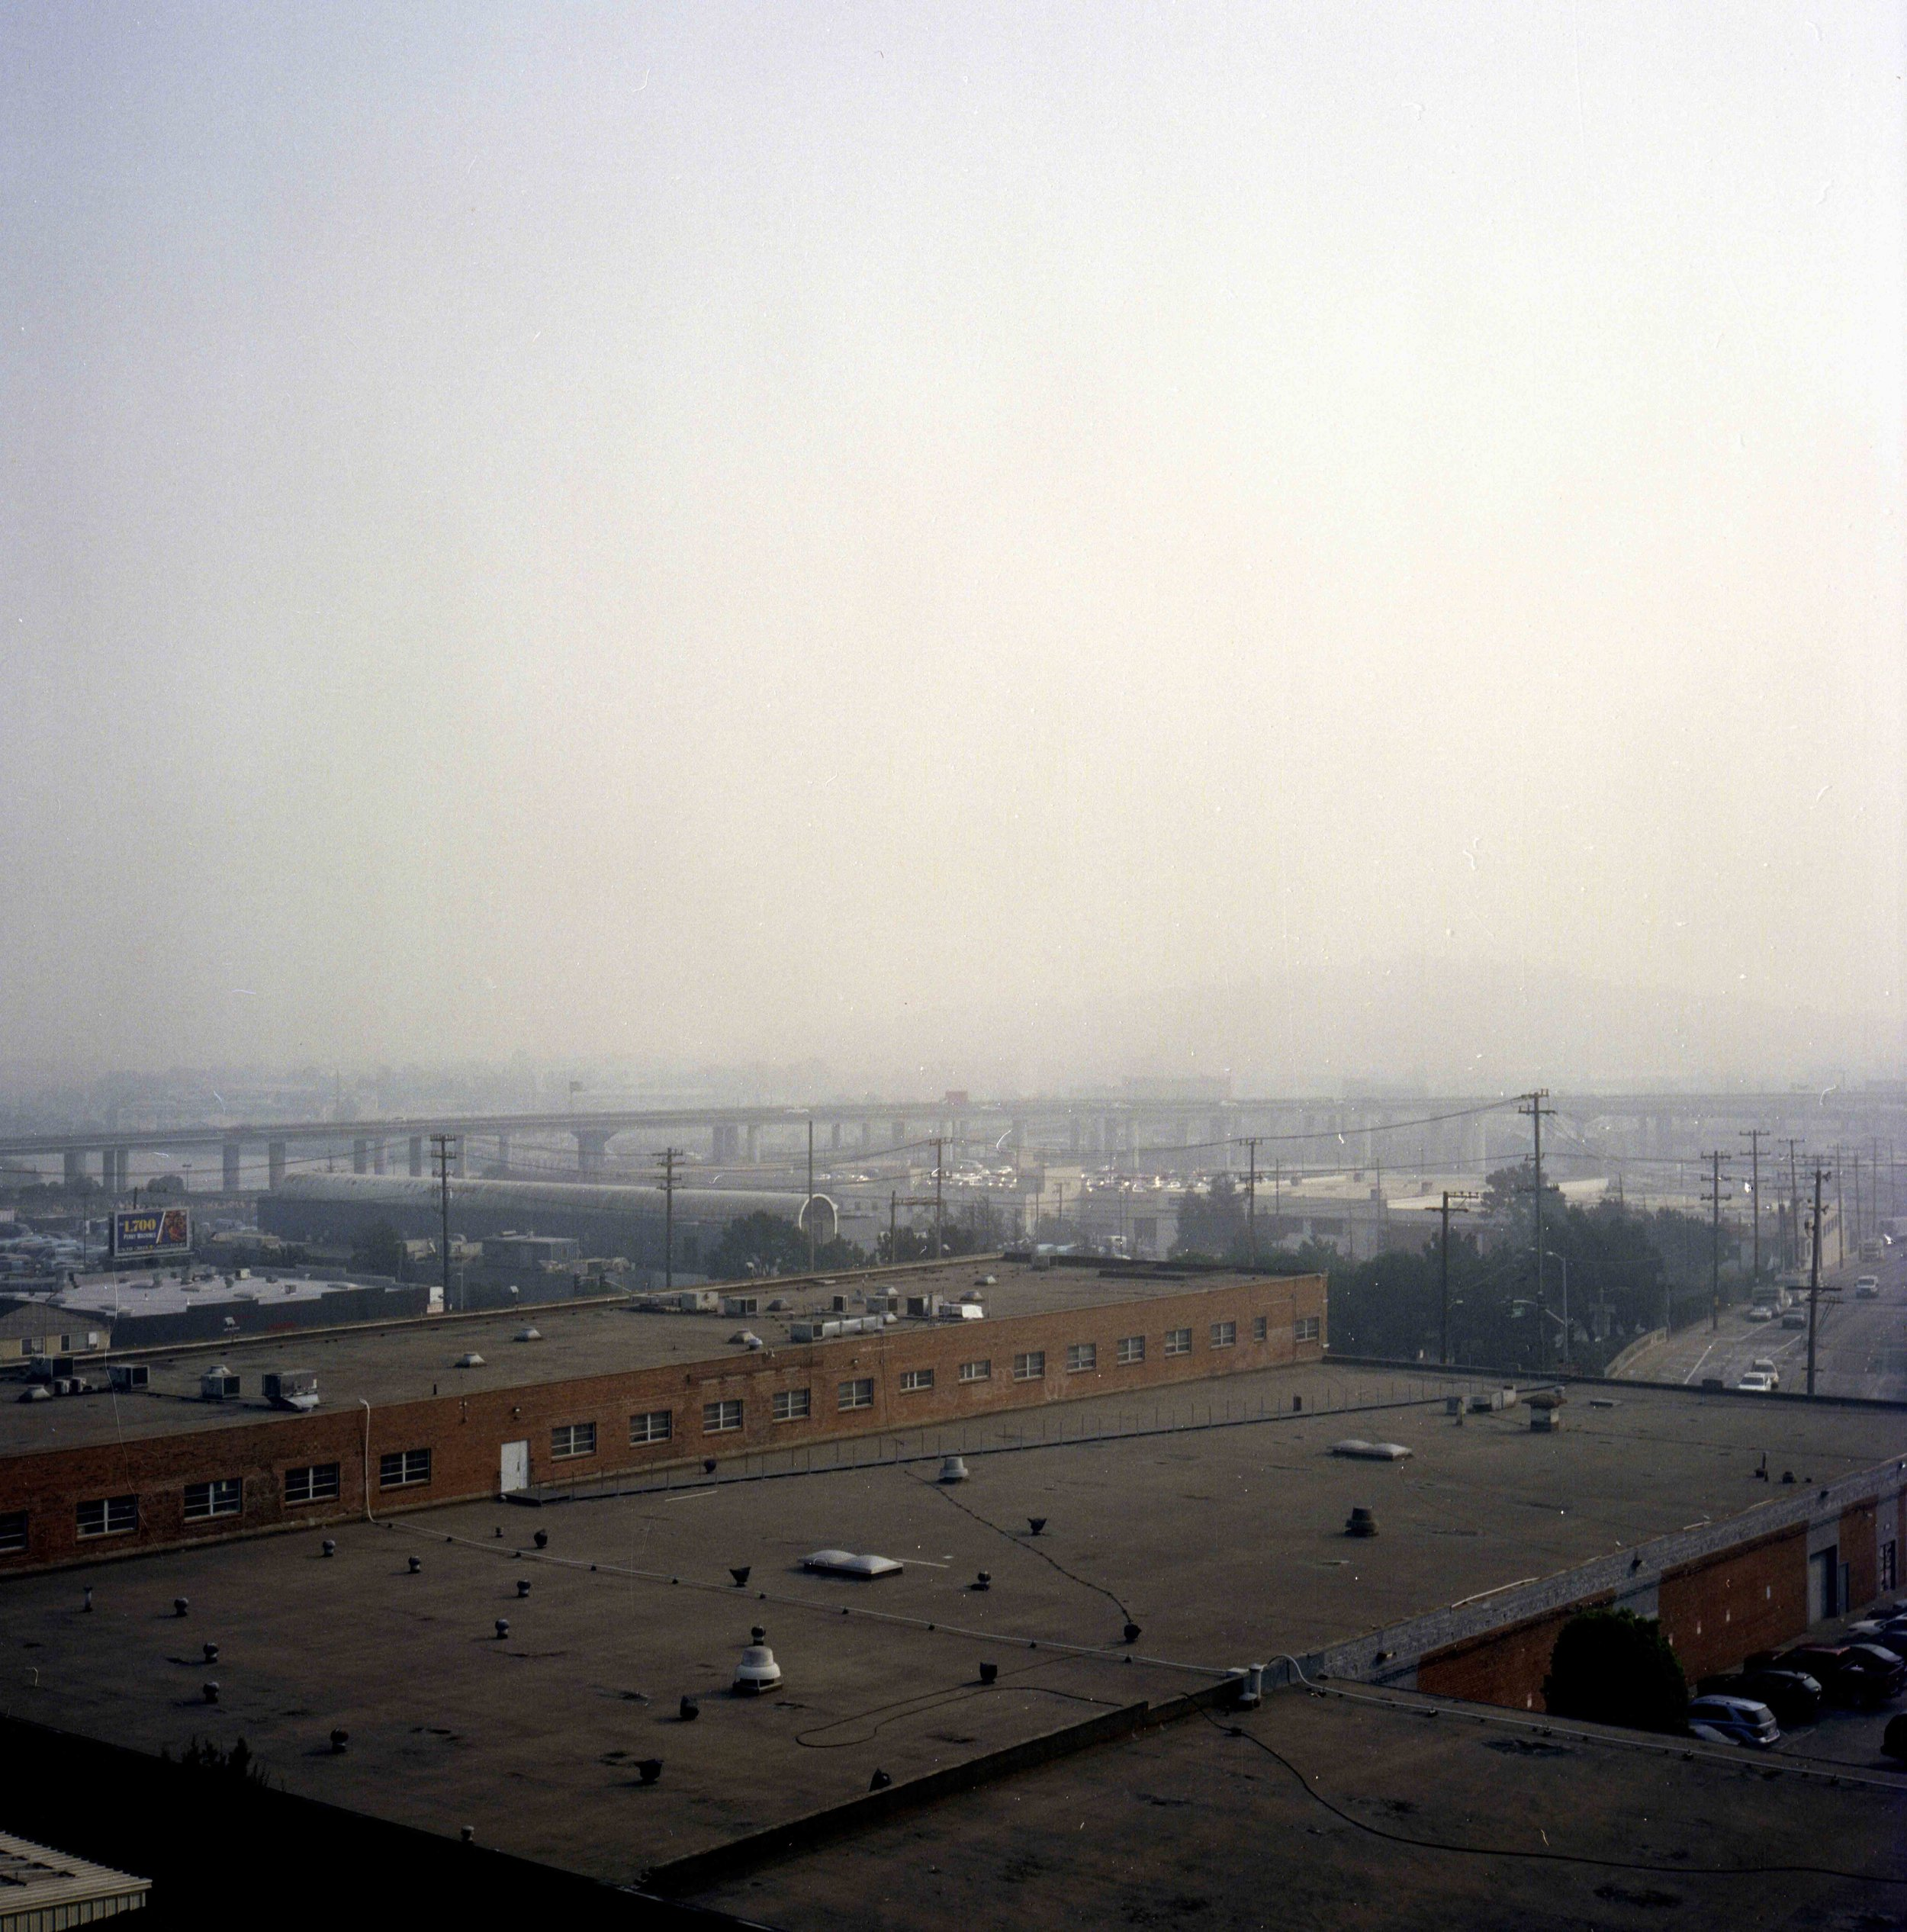 A Hazy View of Bayview-Hunters Point